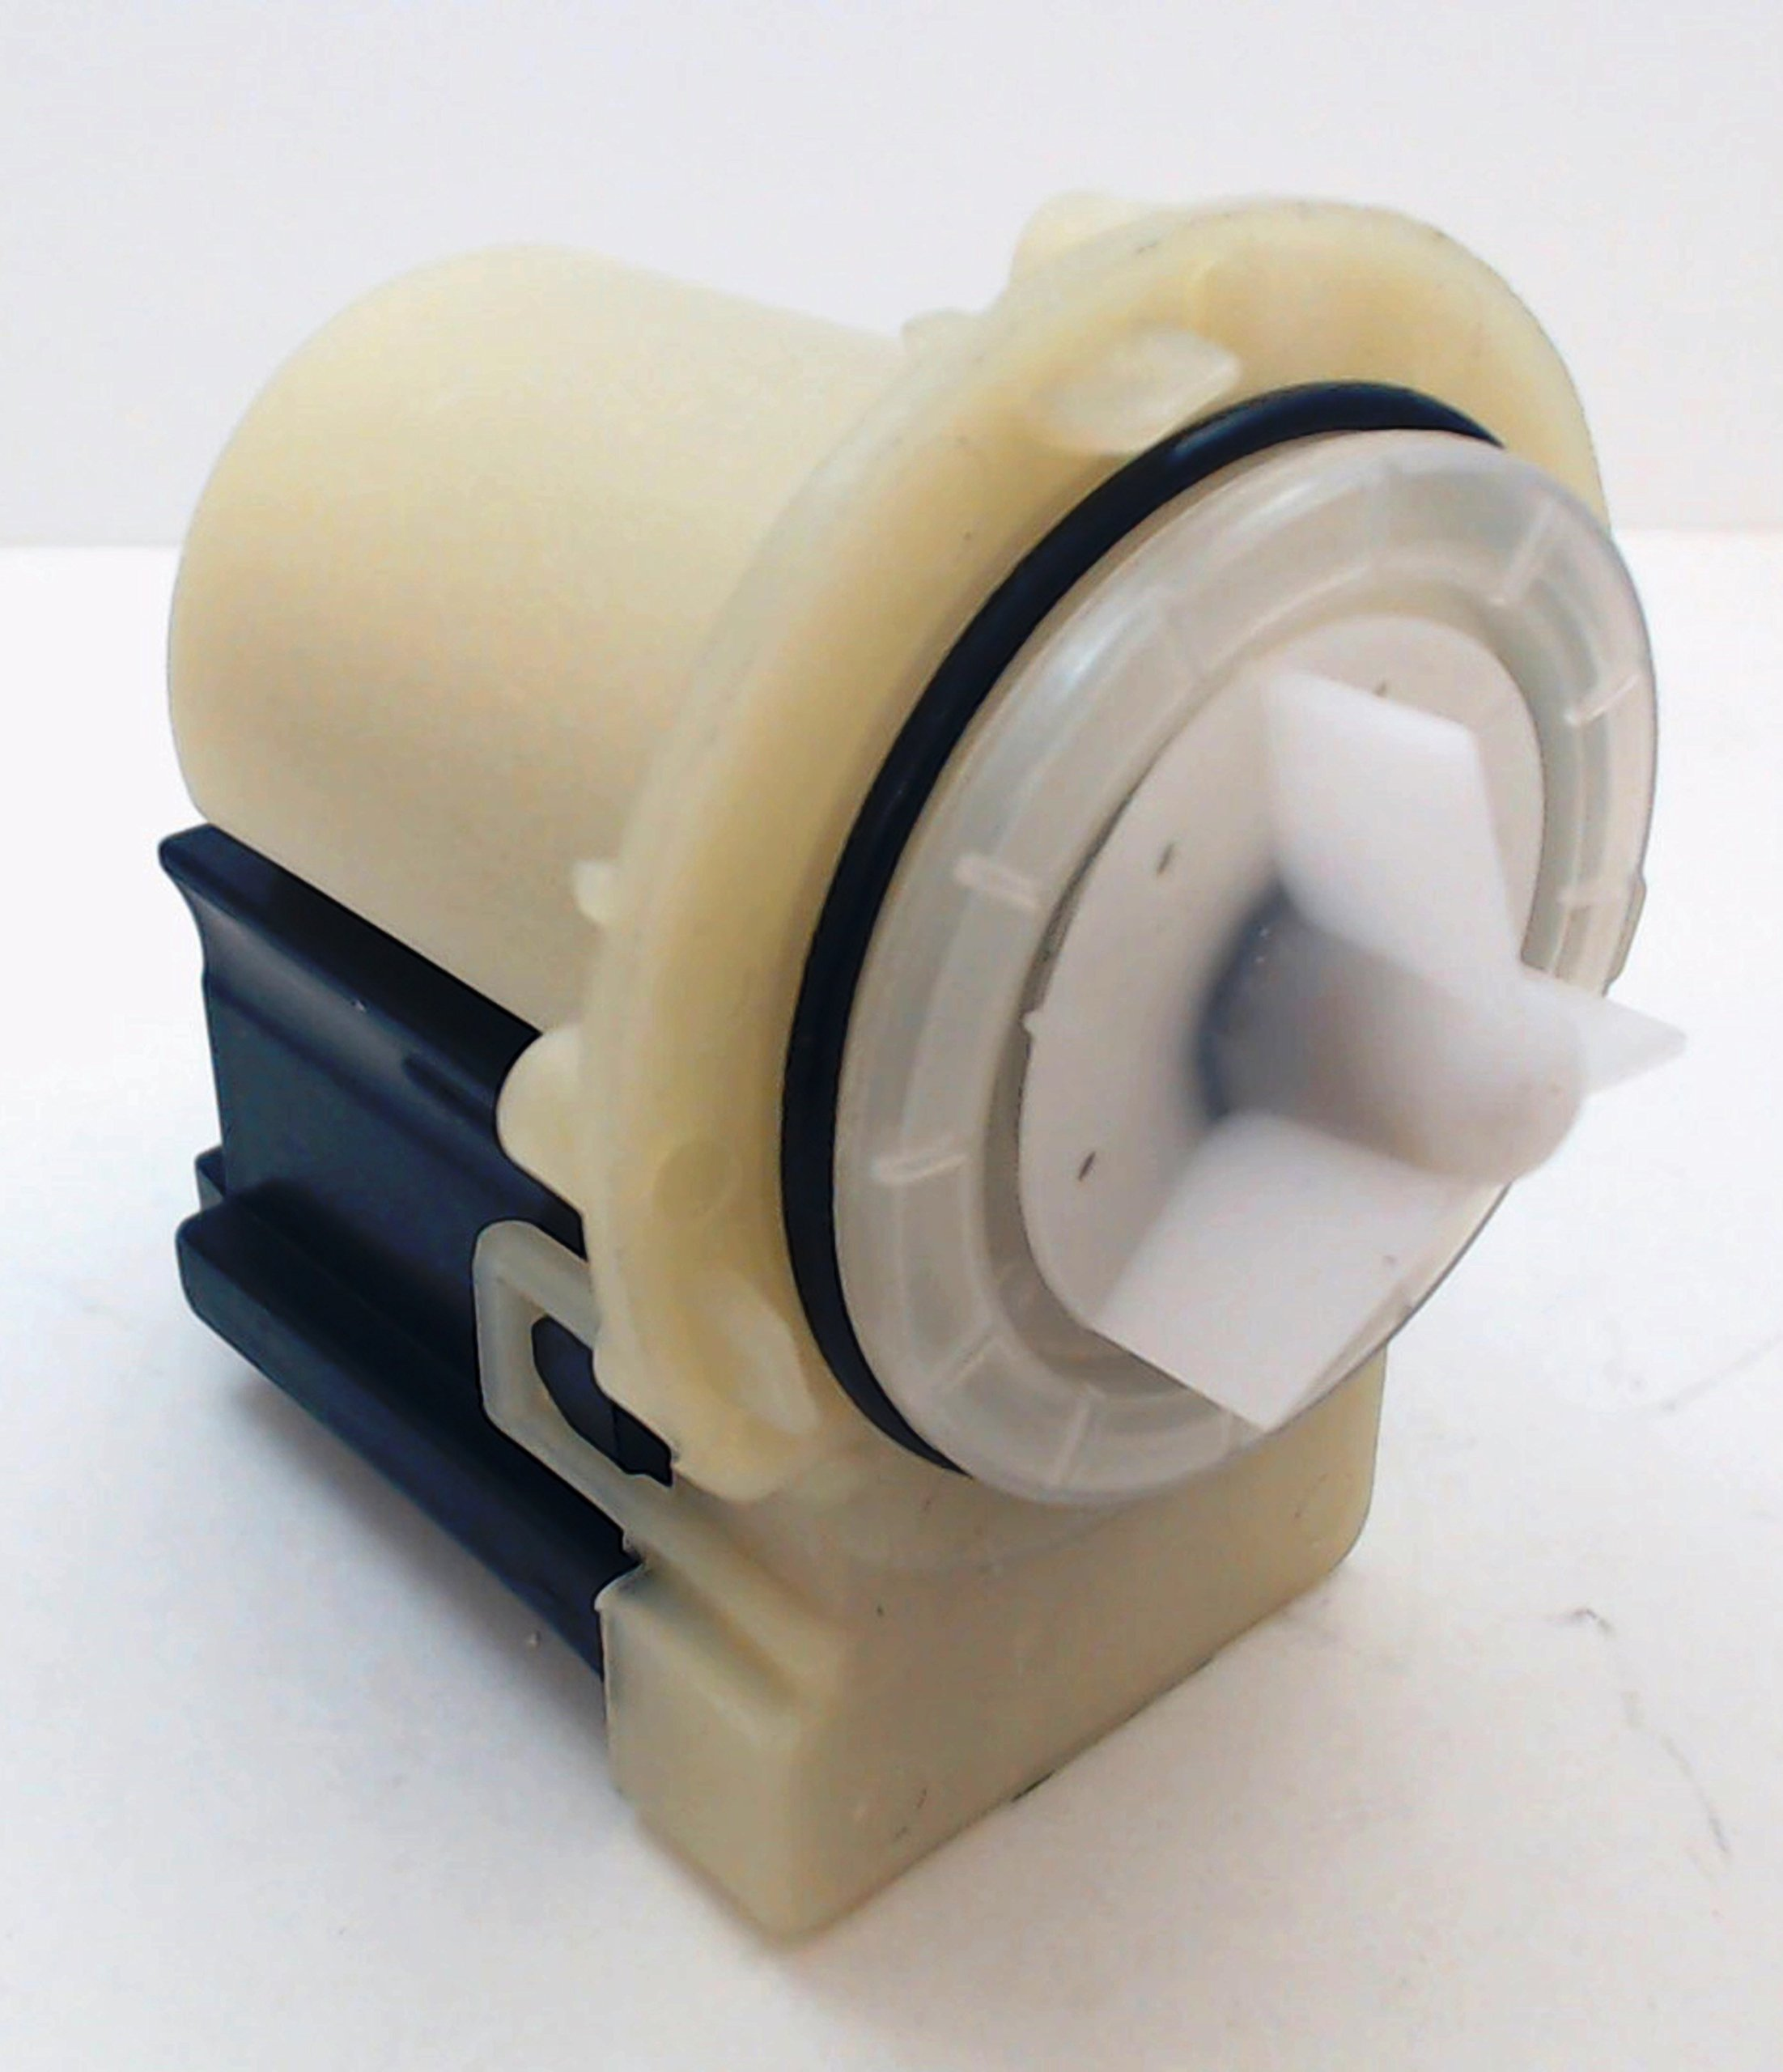 Non OEM SAP280187 Washer Drain Pump Motor Only Included 280187